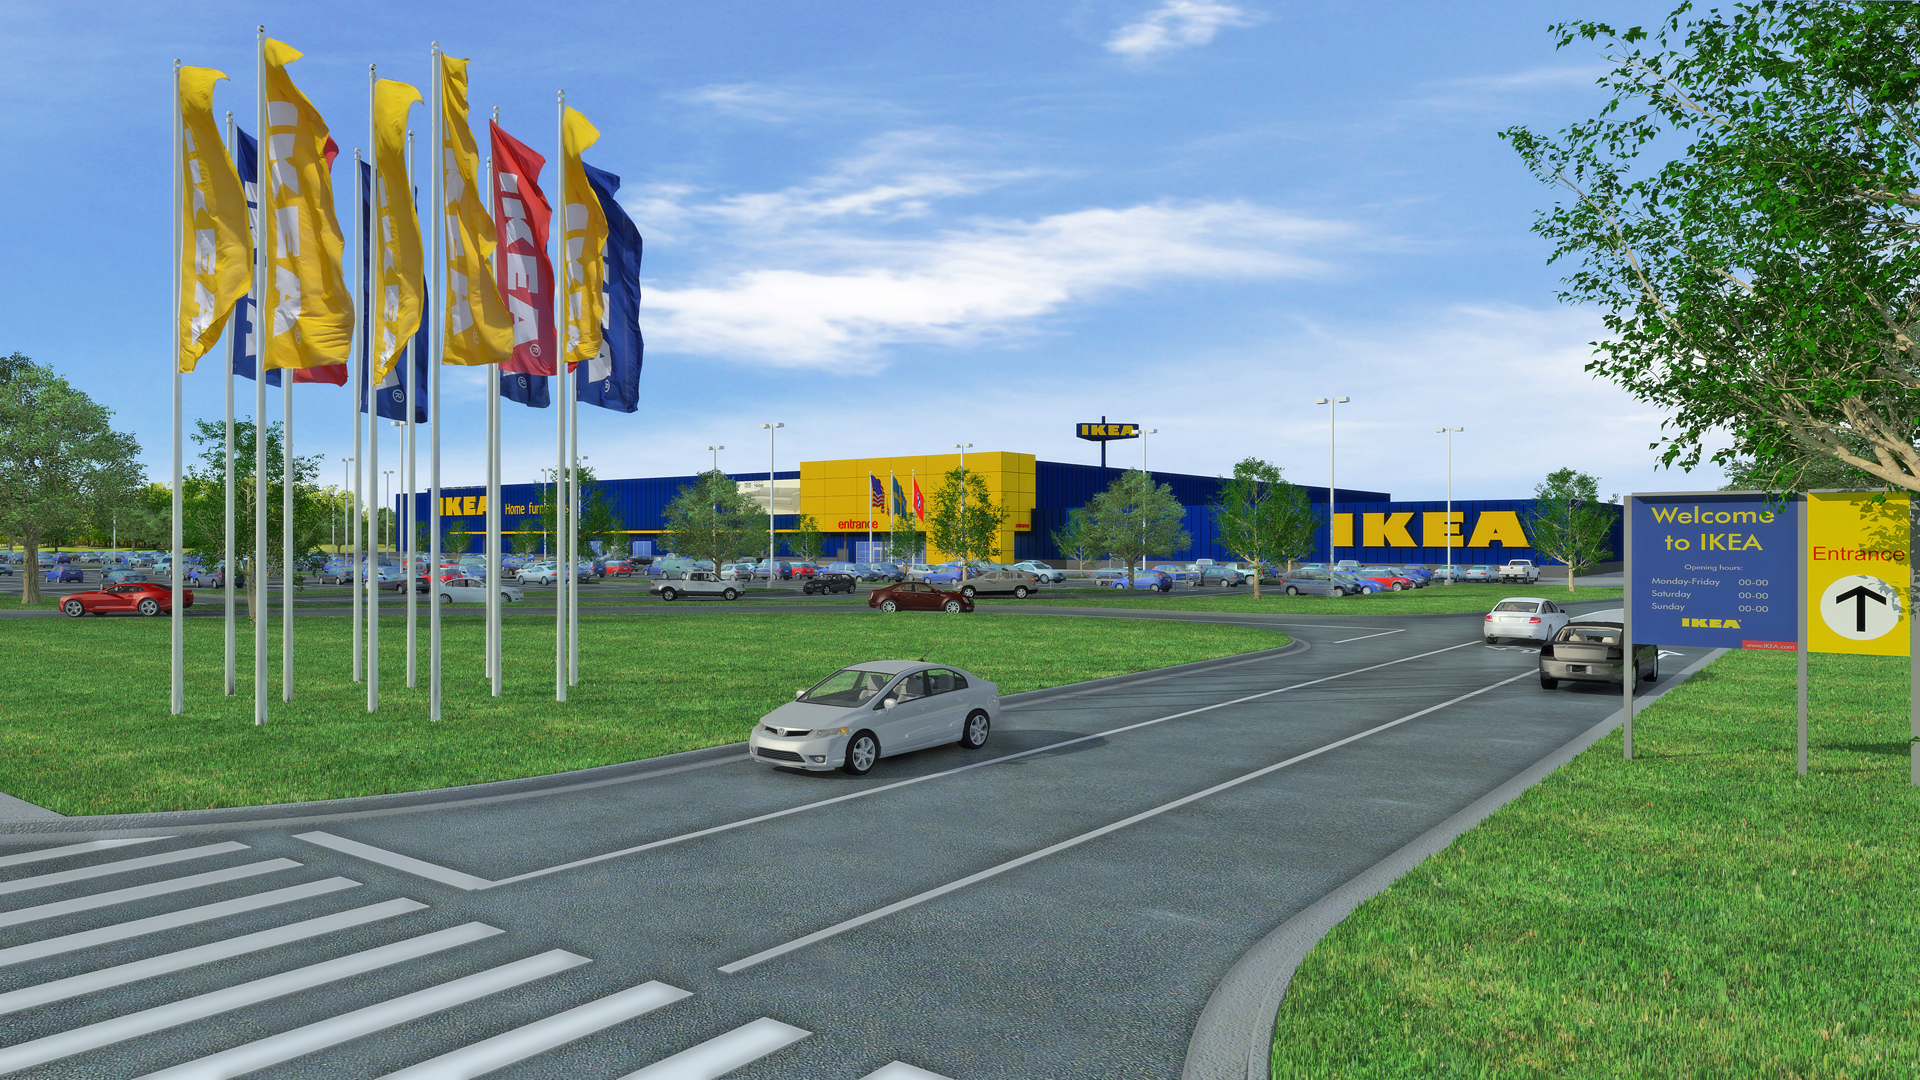 Ikea proposes plans for opening a memphis store in fall for Ikea home planner 2016